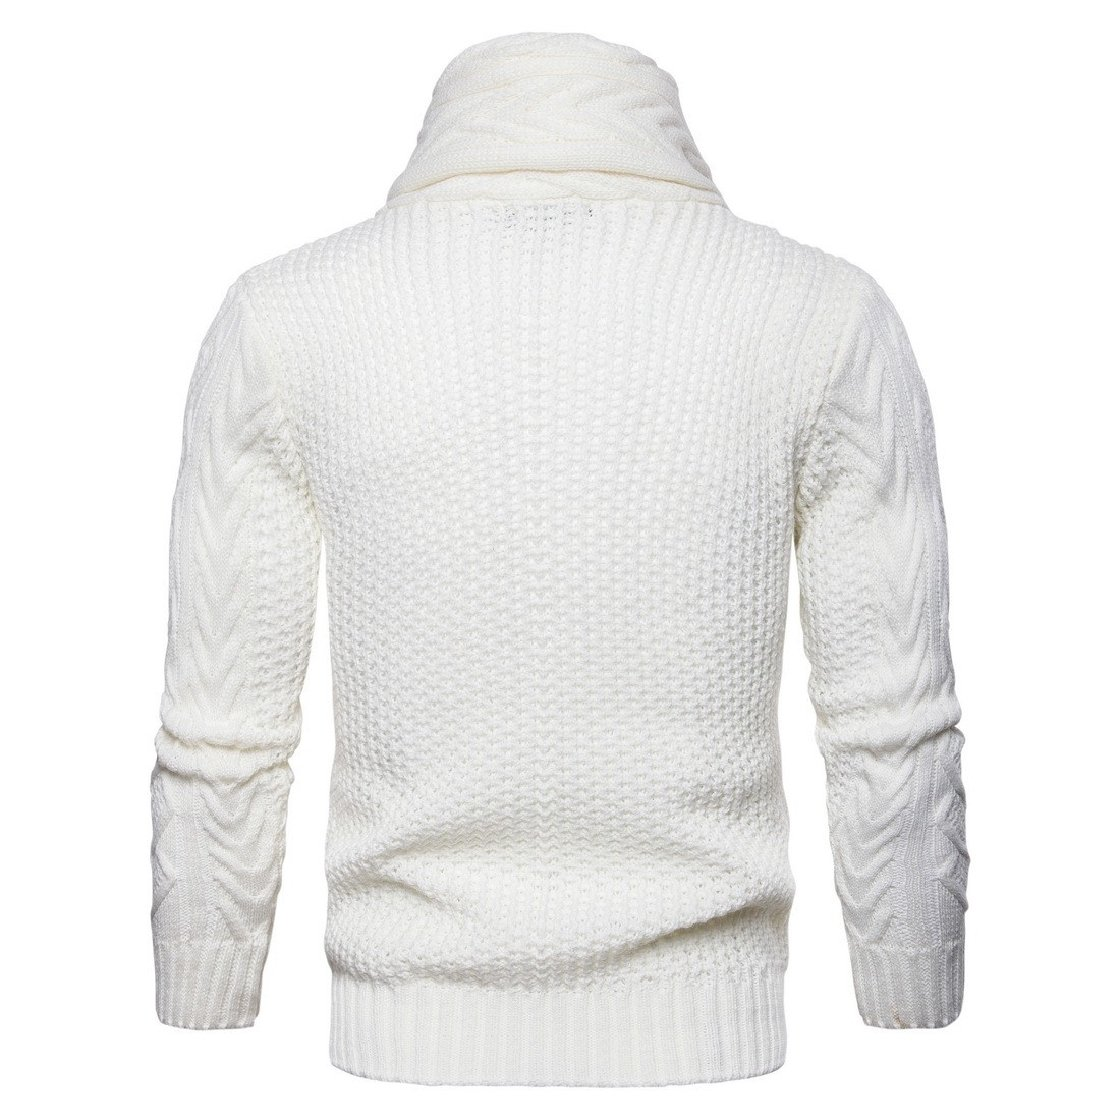 DressU Mens Fashion Lapel Thicken Outwear Casual Knitted Cardi Sweaters